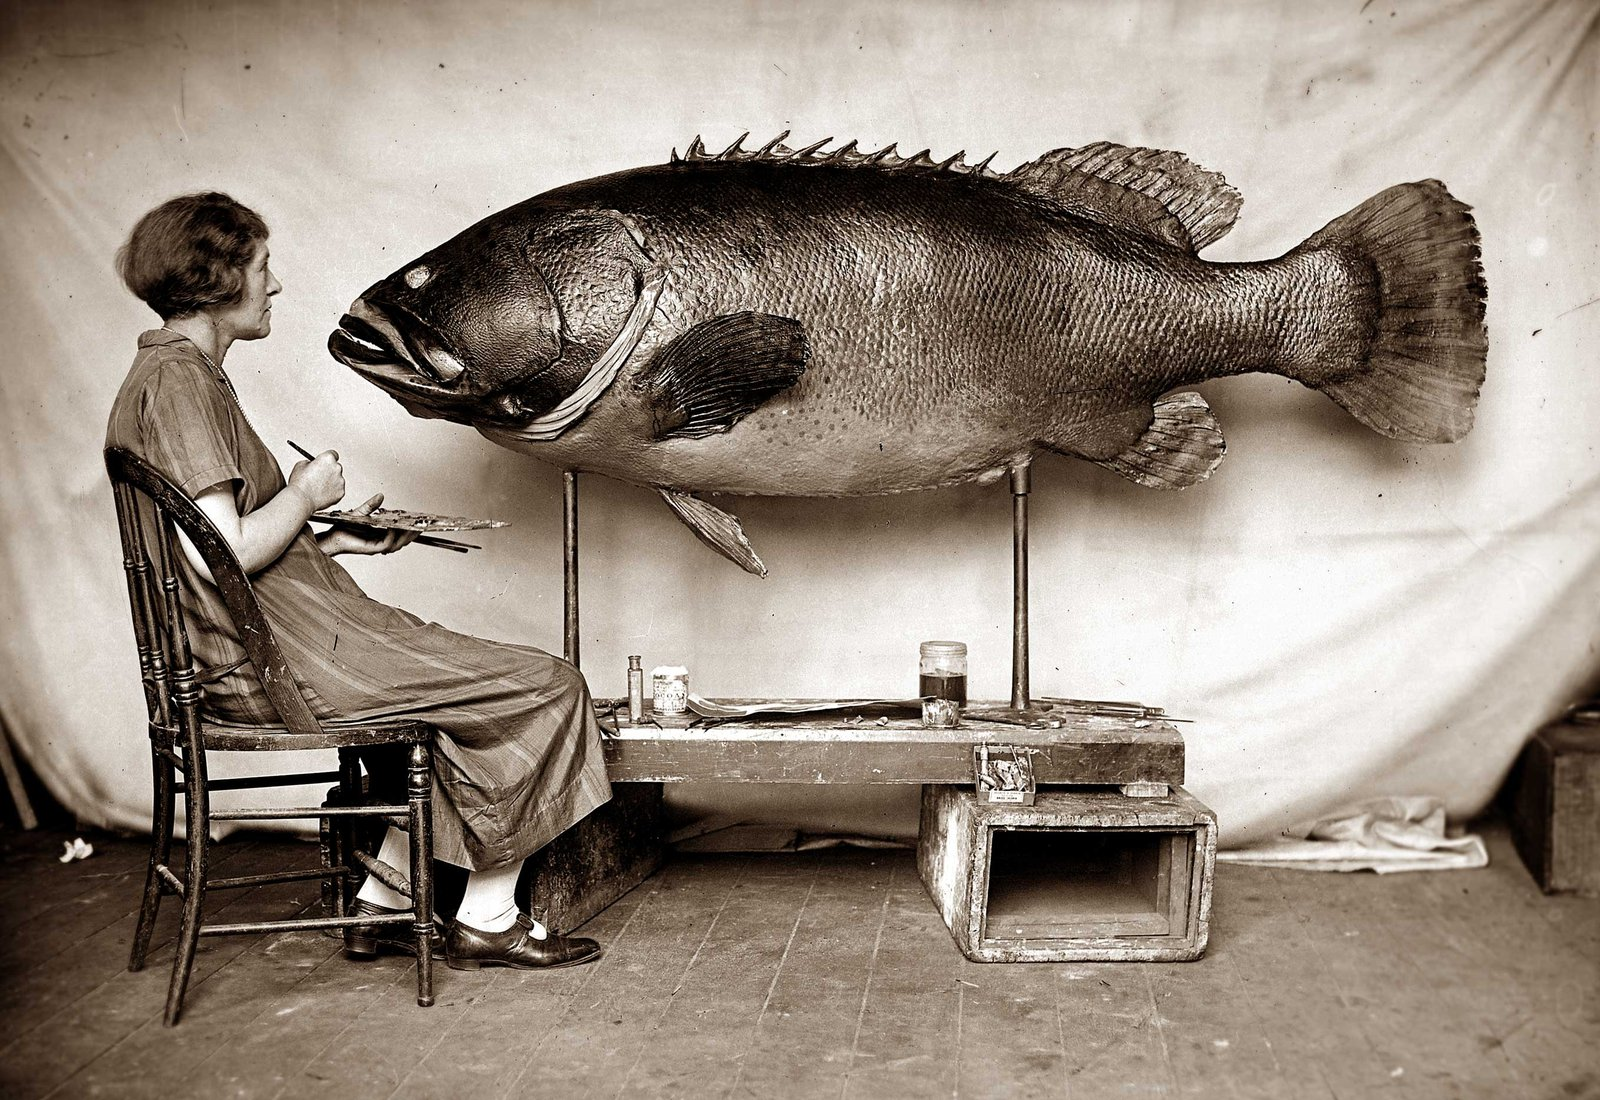 Ethel King with Queensland Groper